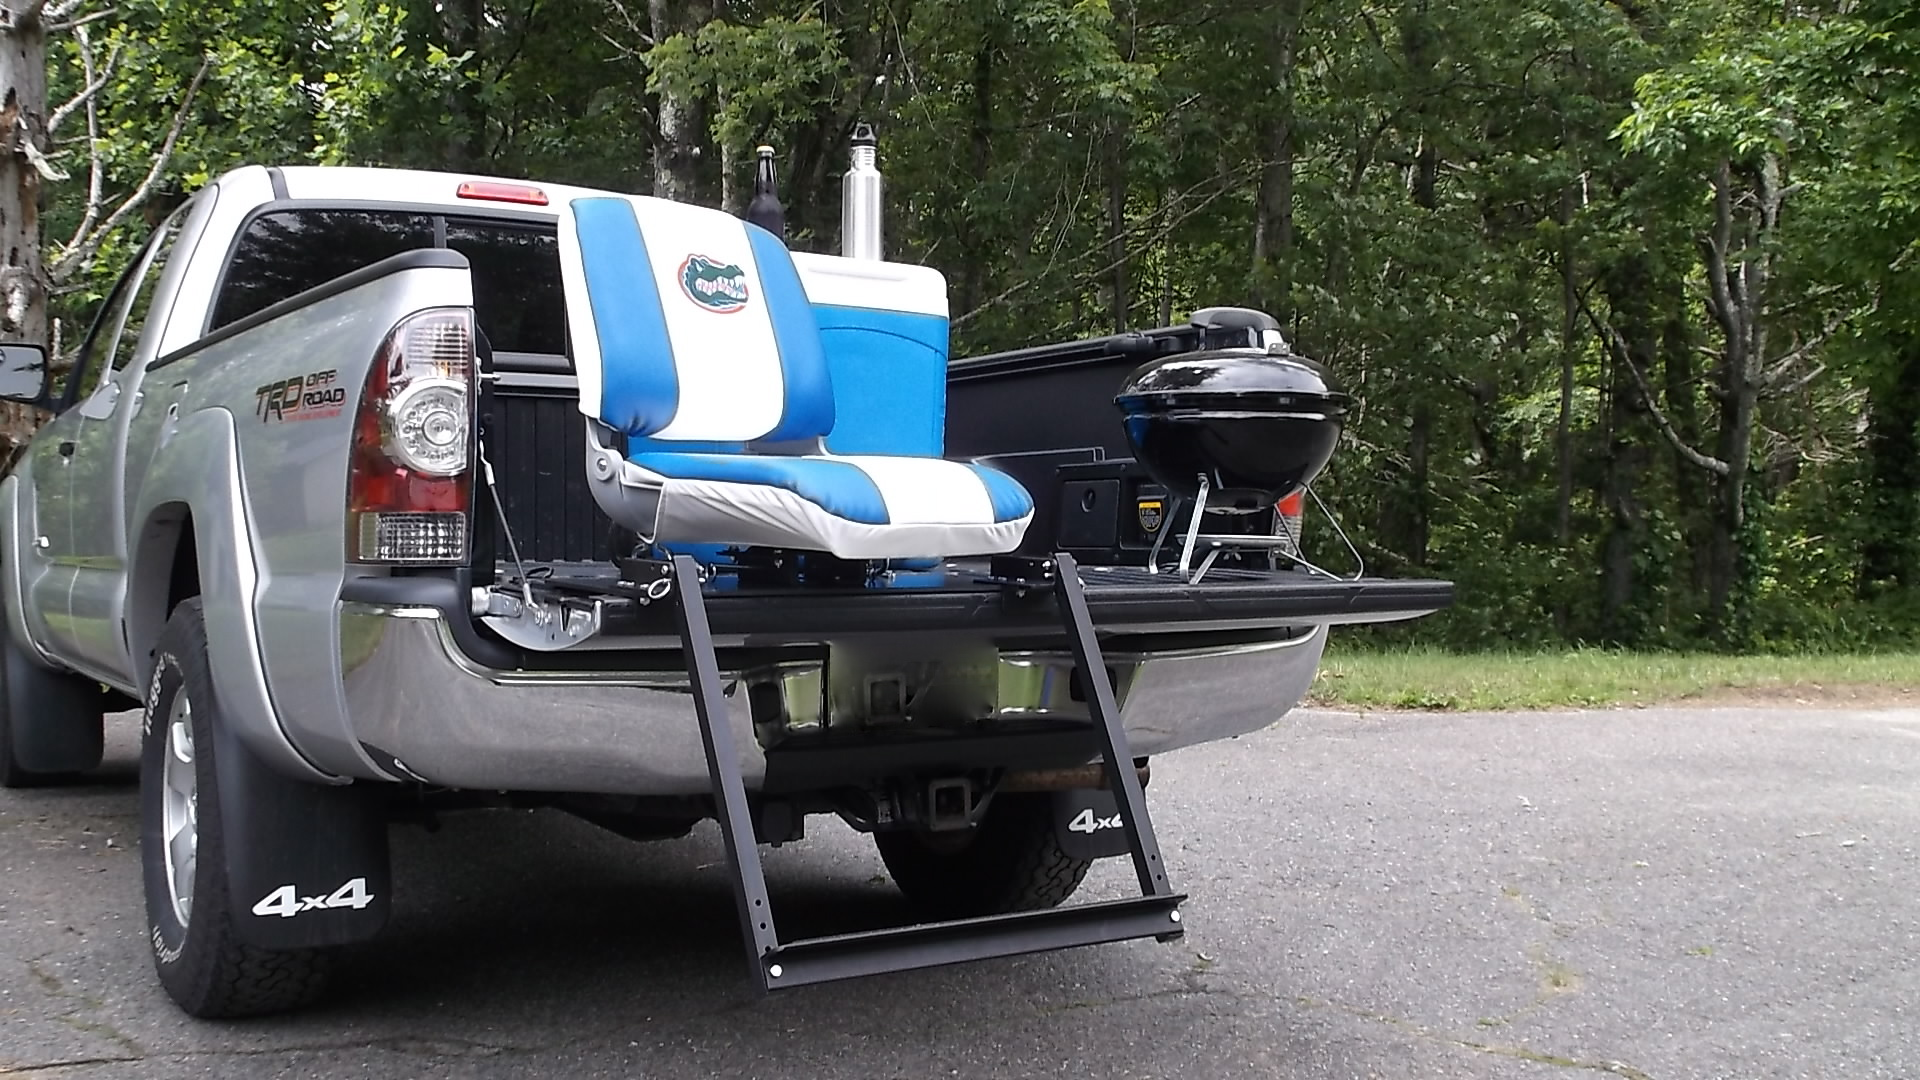 Tailgate Chairs Viba Seat Sit On Tailgate Of Your Truck Inside Tailgating